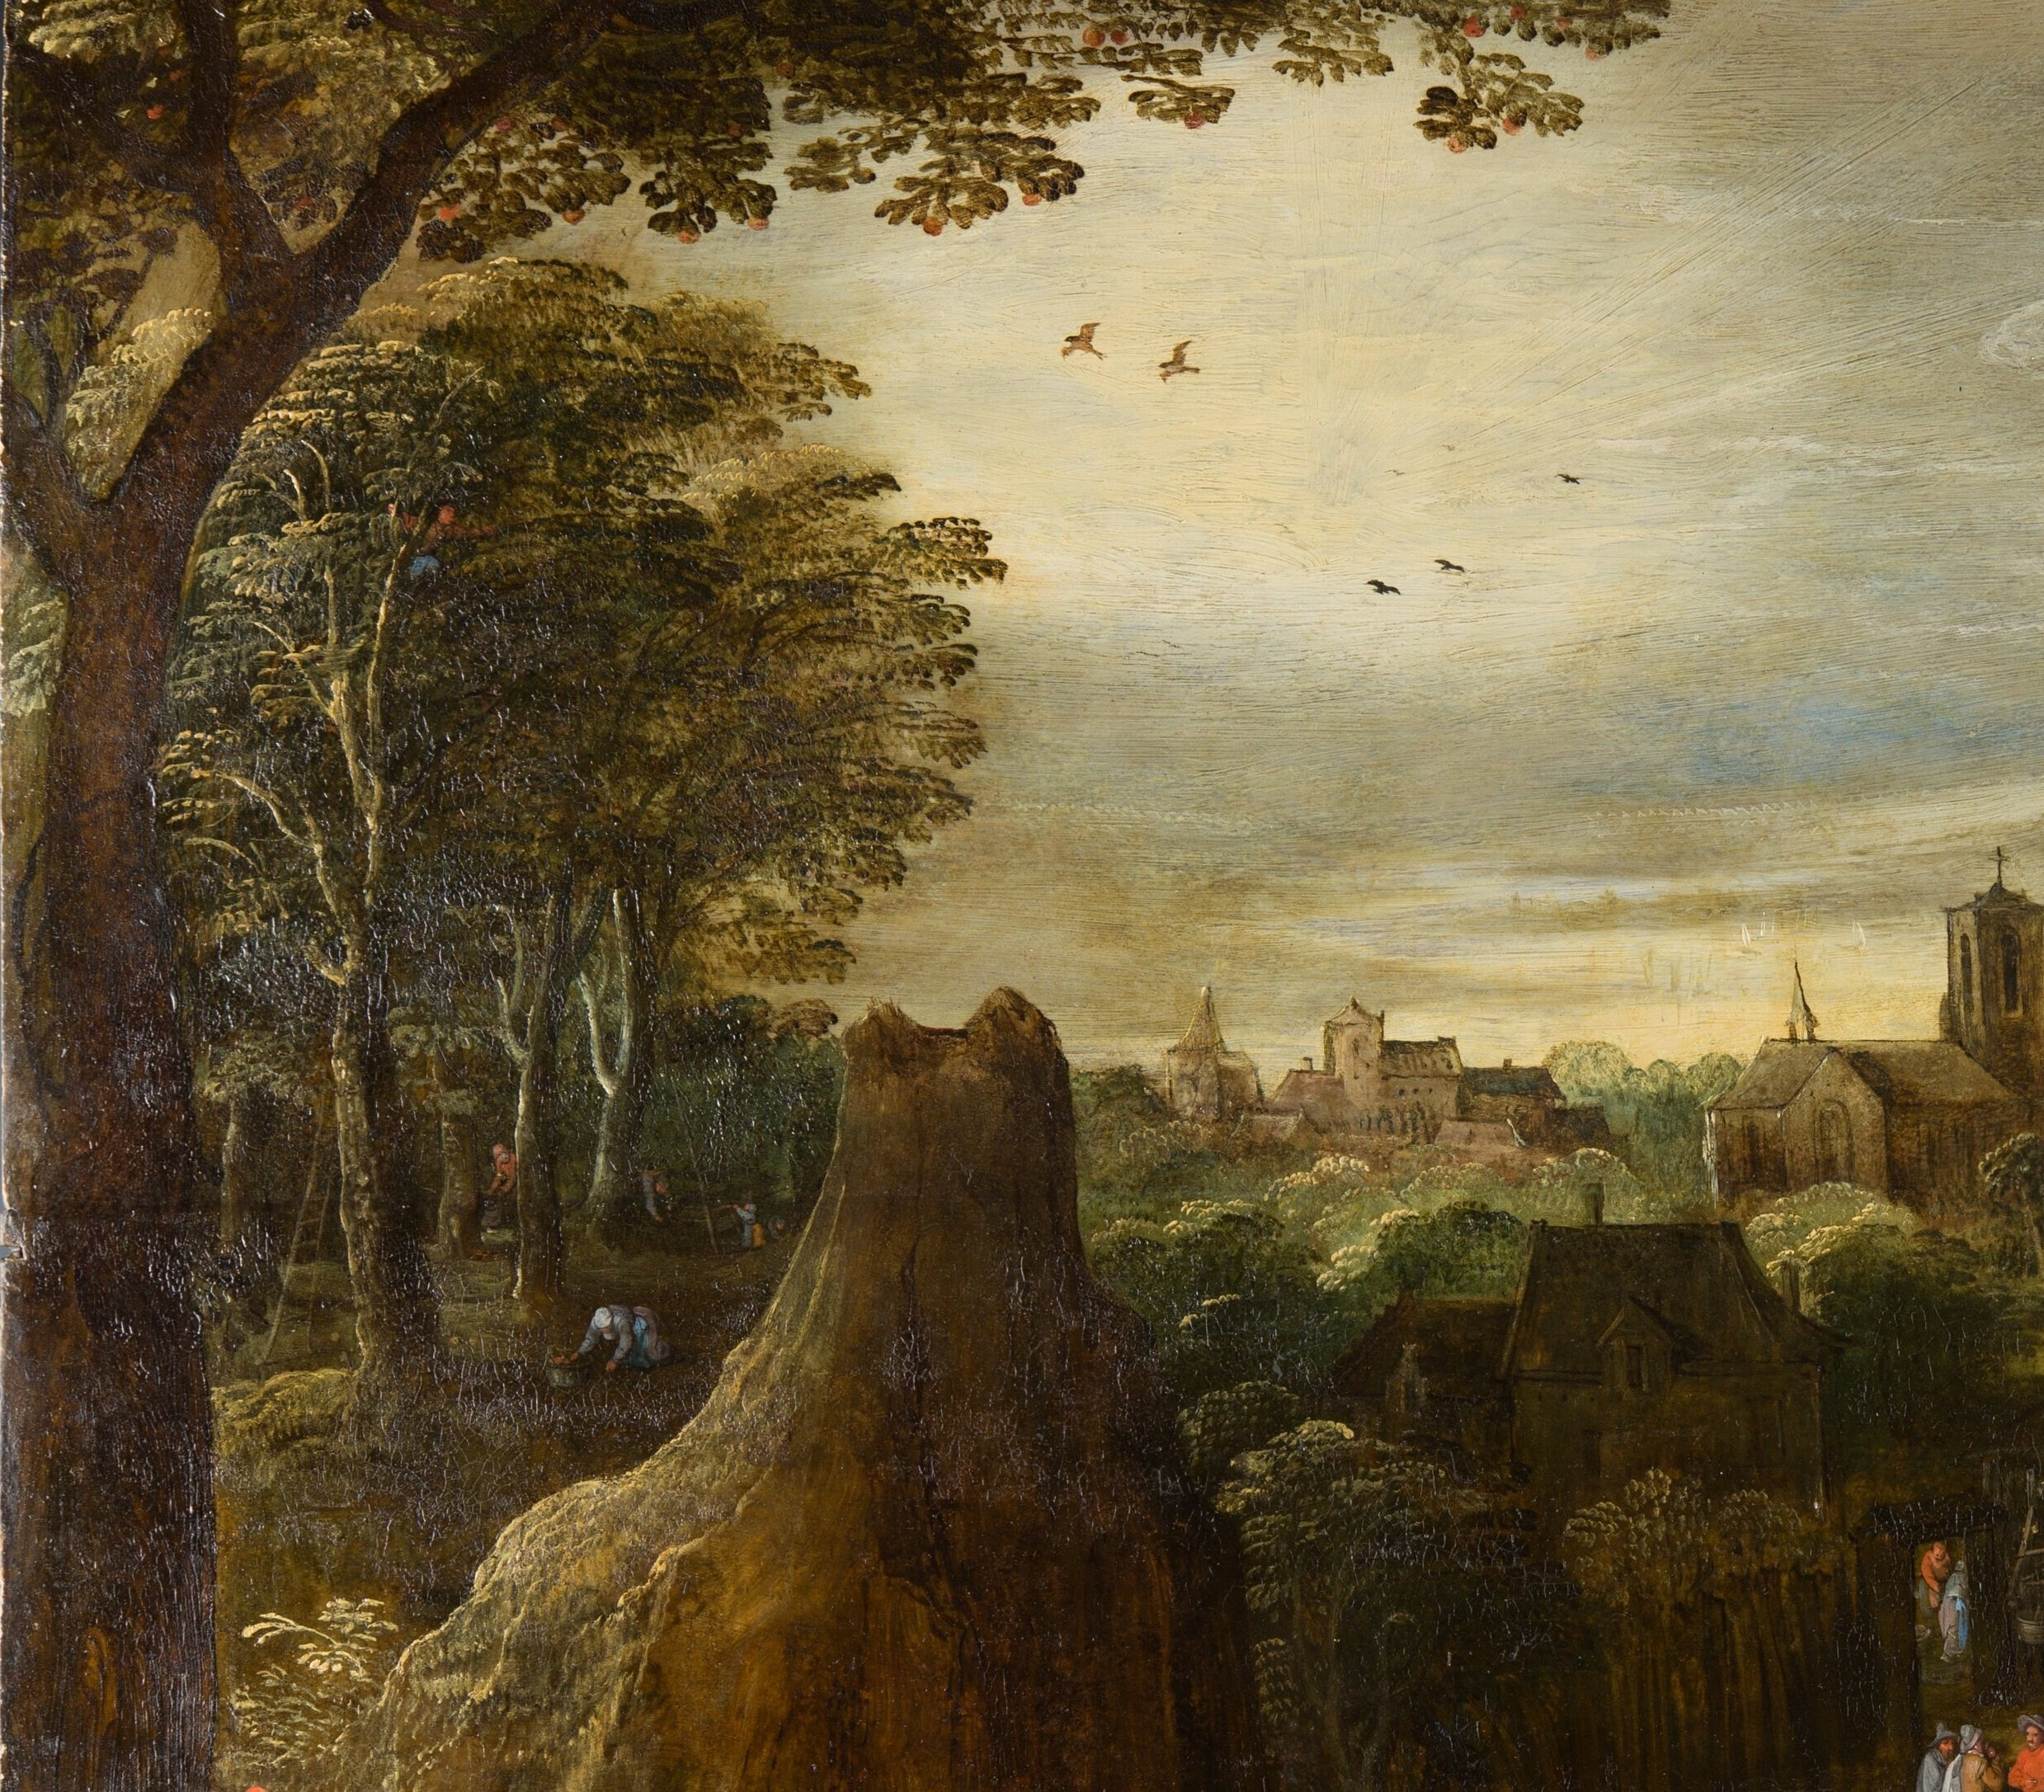 After treatment: the dovecote that was just discernible before treatment proved to be later overpaint, and on removal revealed a rocky outcrop. The tree rising out above the horizon was also a later addition which on removal has revealed a group of buildings, and behind it the river with sailing boats. Note the apple pickers in the woods, and the man in the tree.